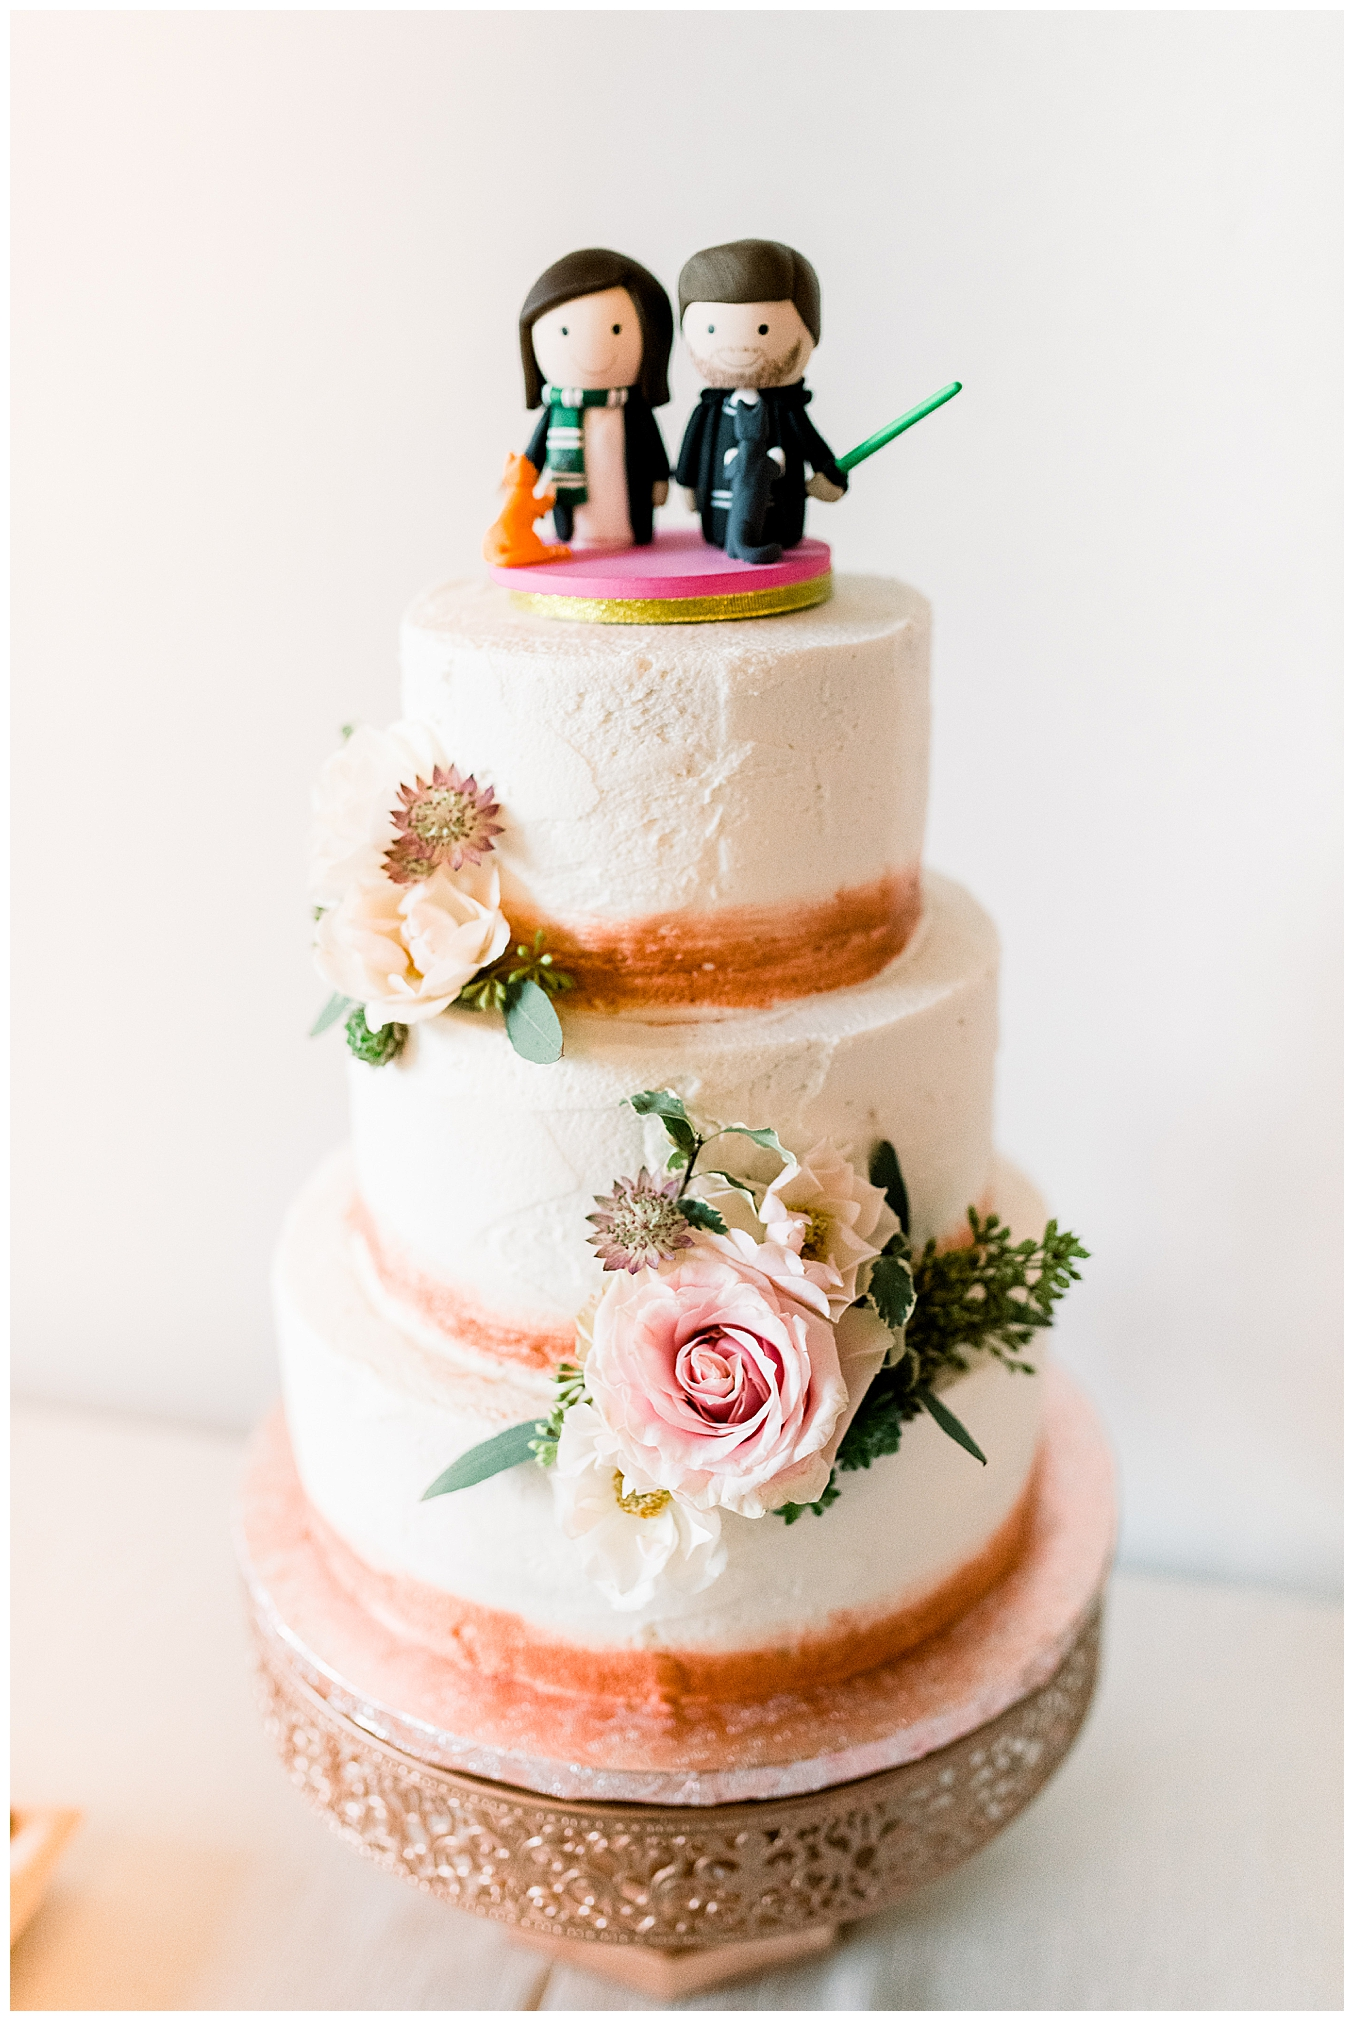 custom-harry-potter-cake-topper-with-cat